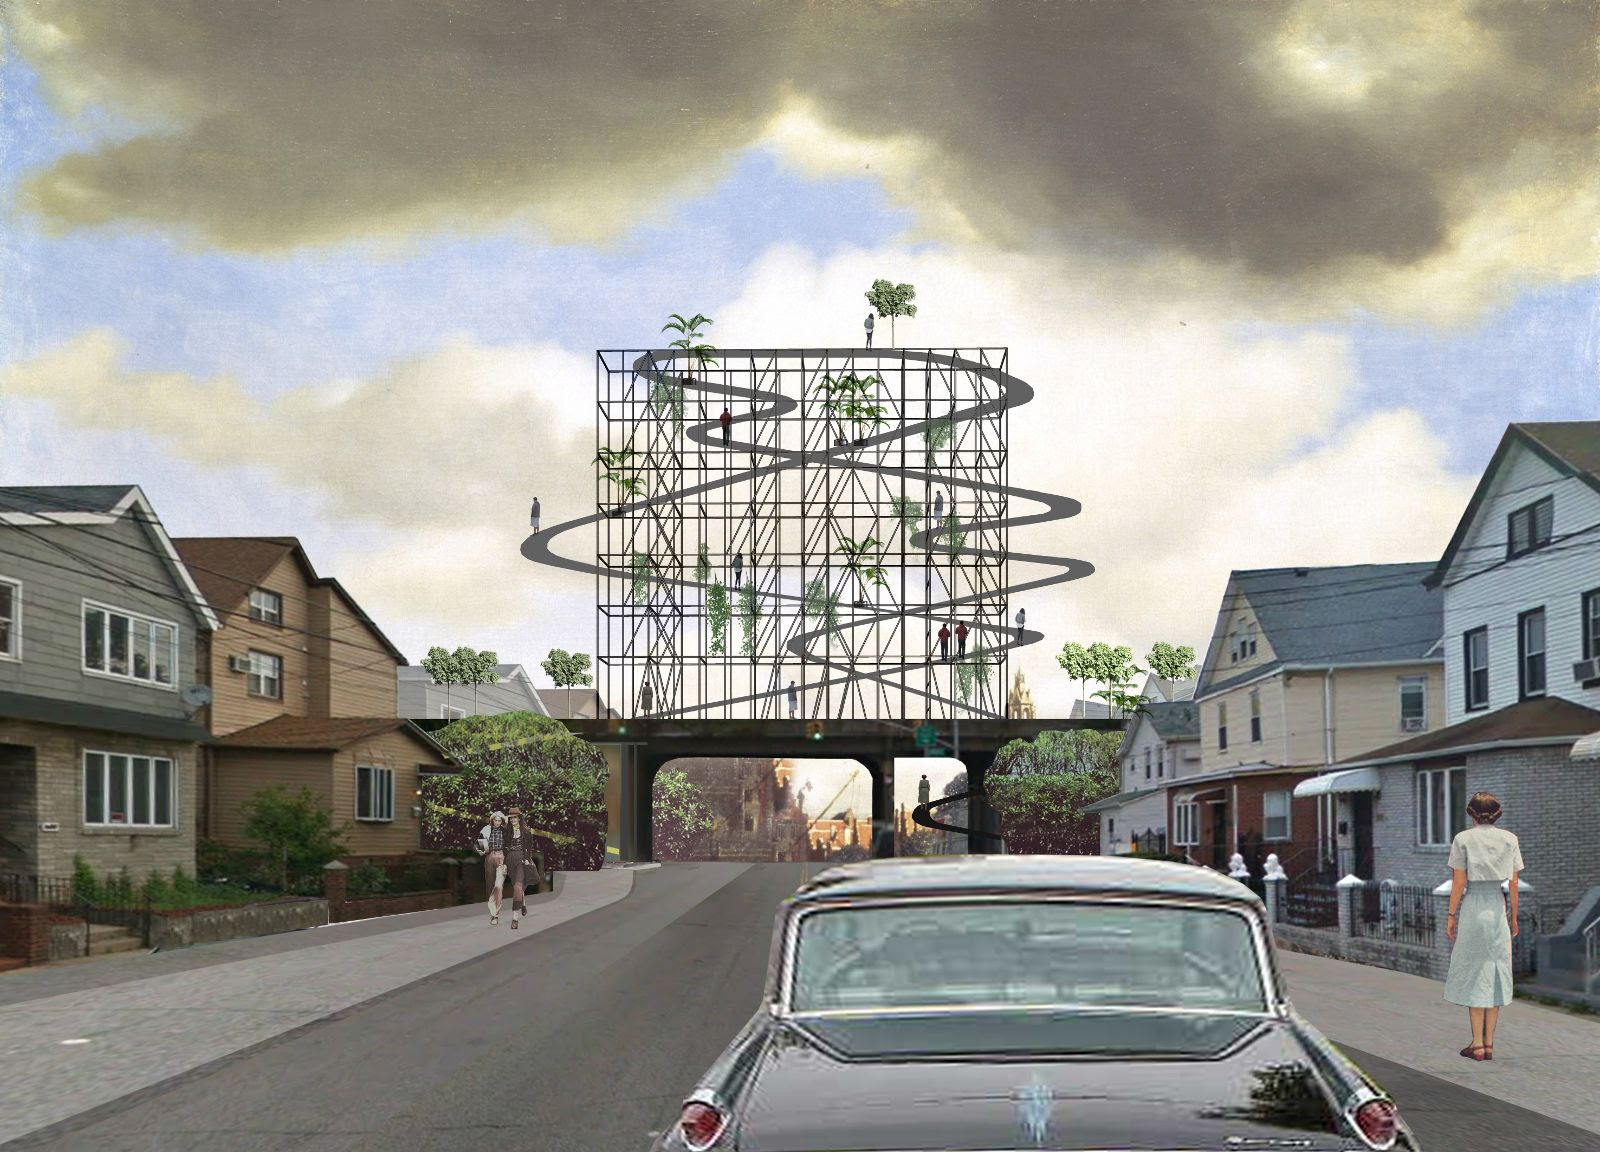 2nd Prize ($2500): Queens Billboard / Nikolay Martynov of Basel, Switzerland